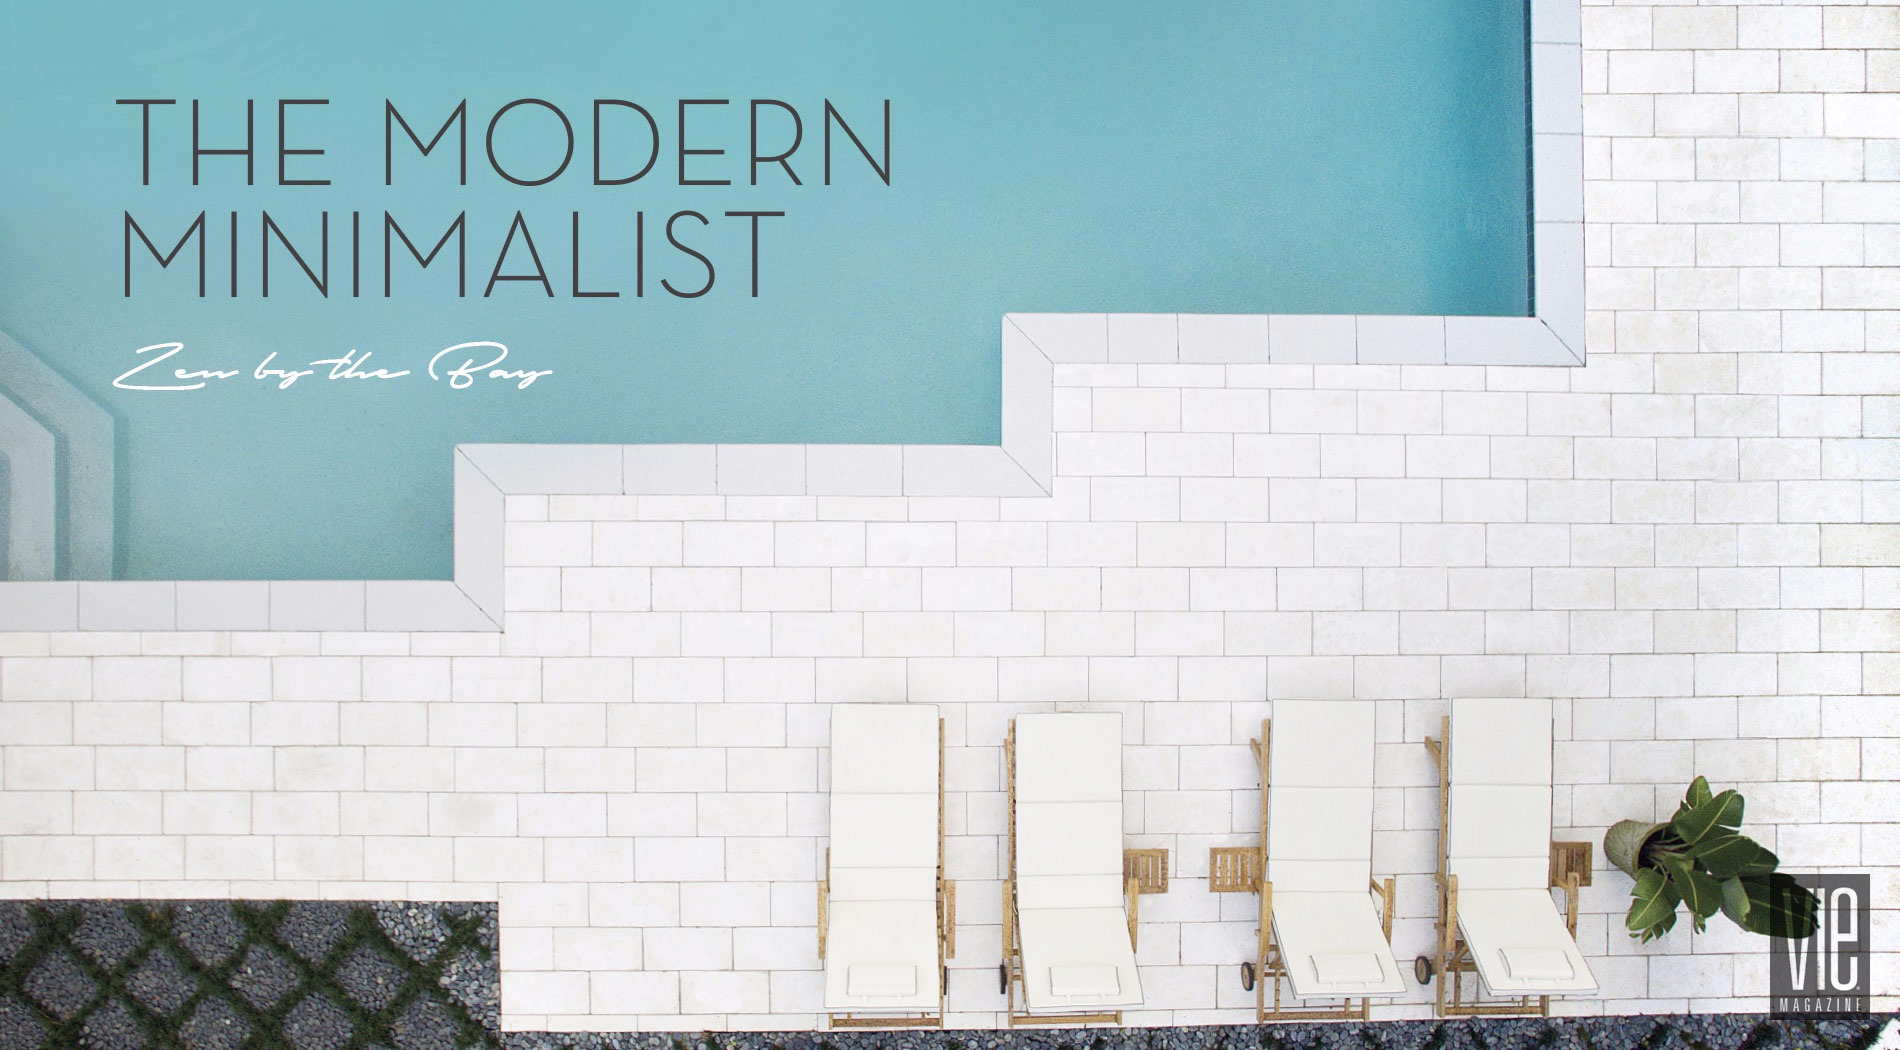 Modern Minimalist Article for Vie Magazine